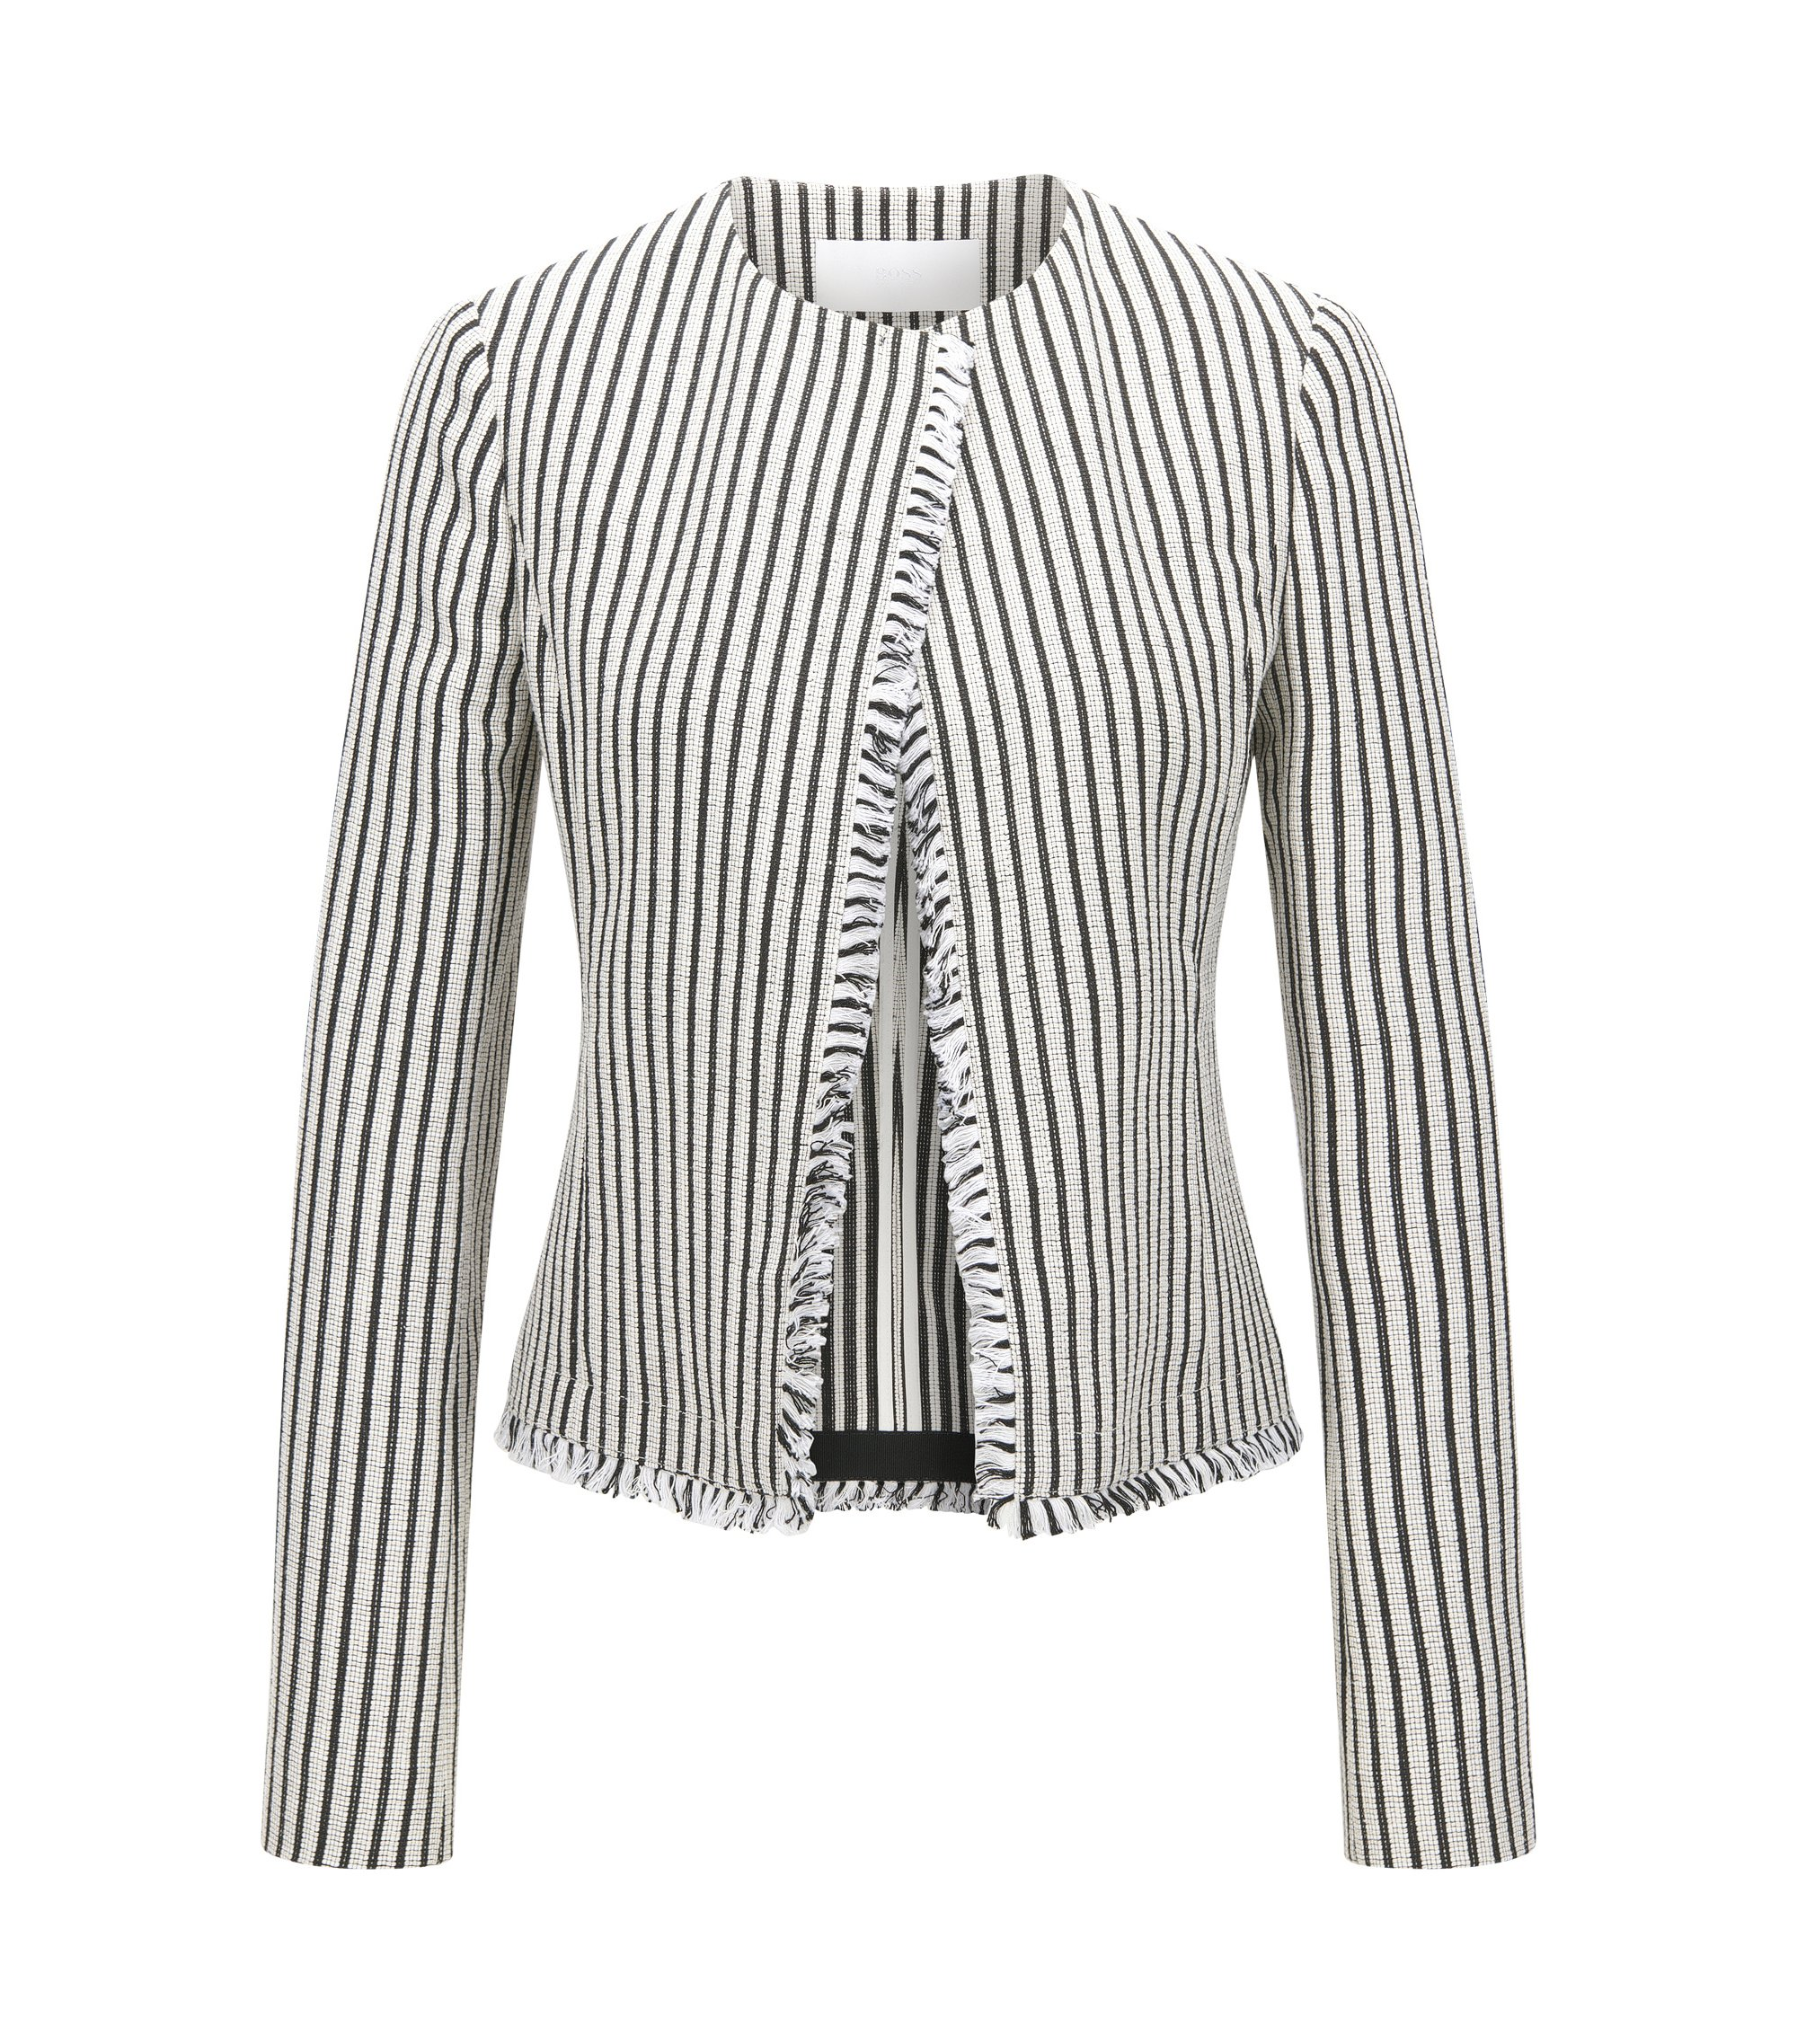 Striped Cotton Blend Bouclé Jacket | Komina, Patterned